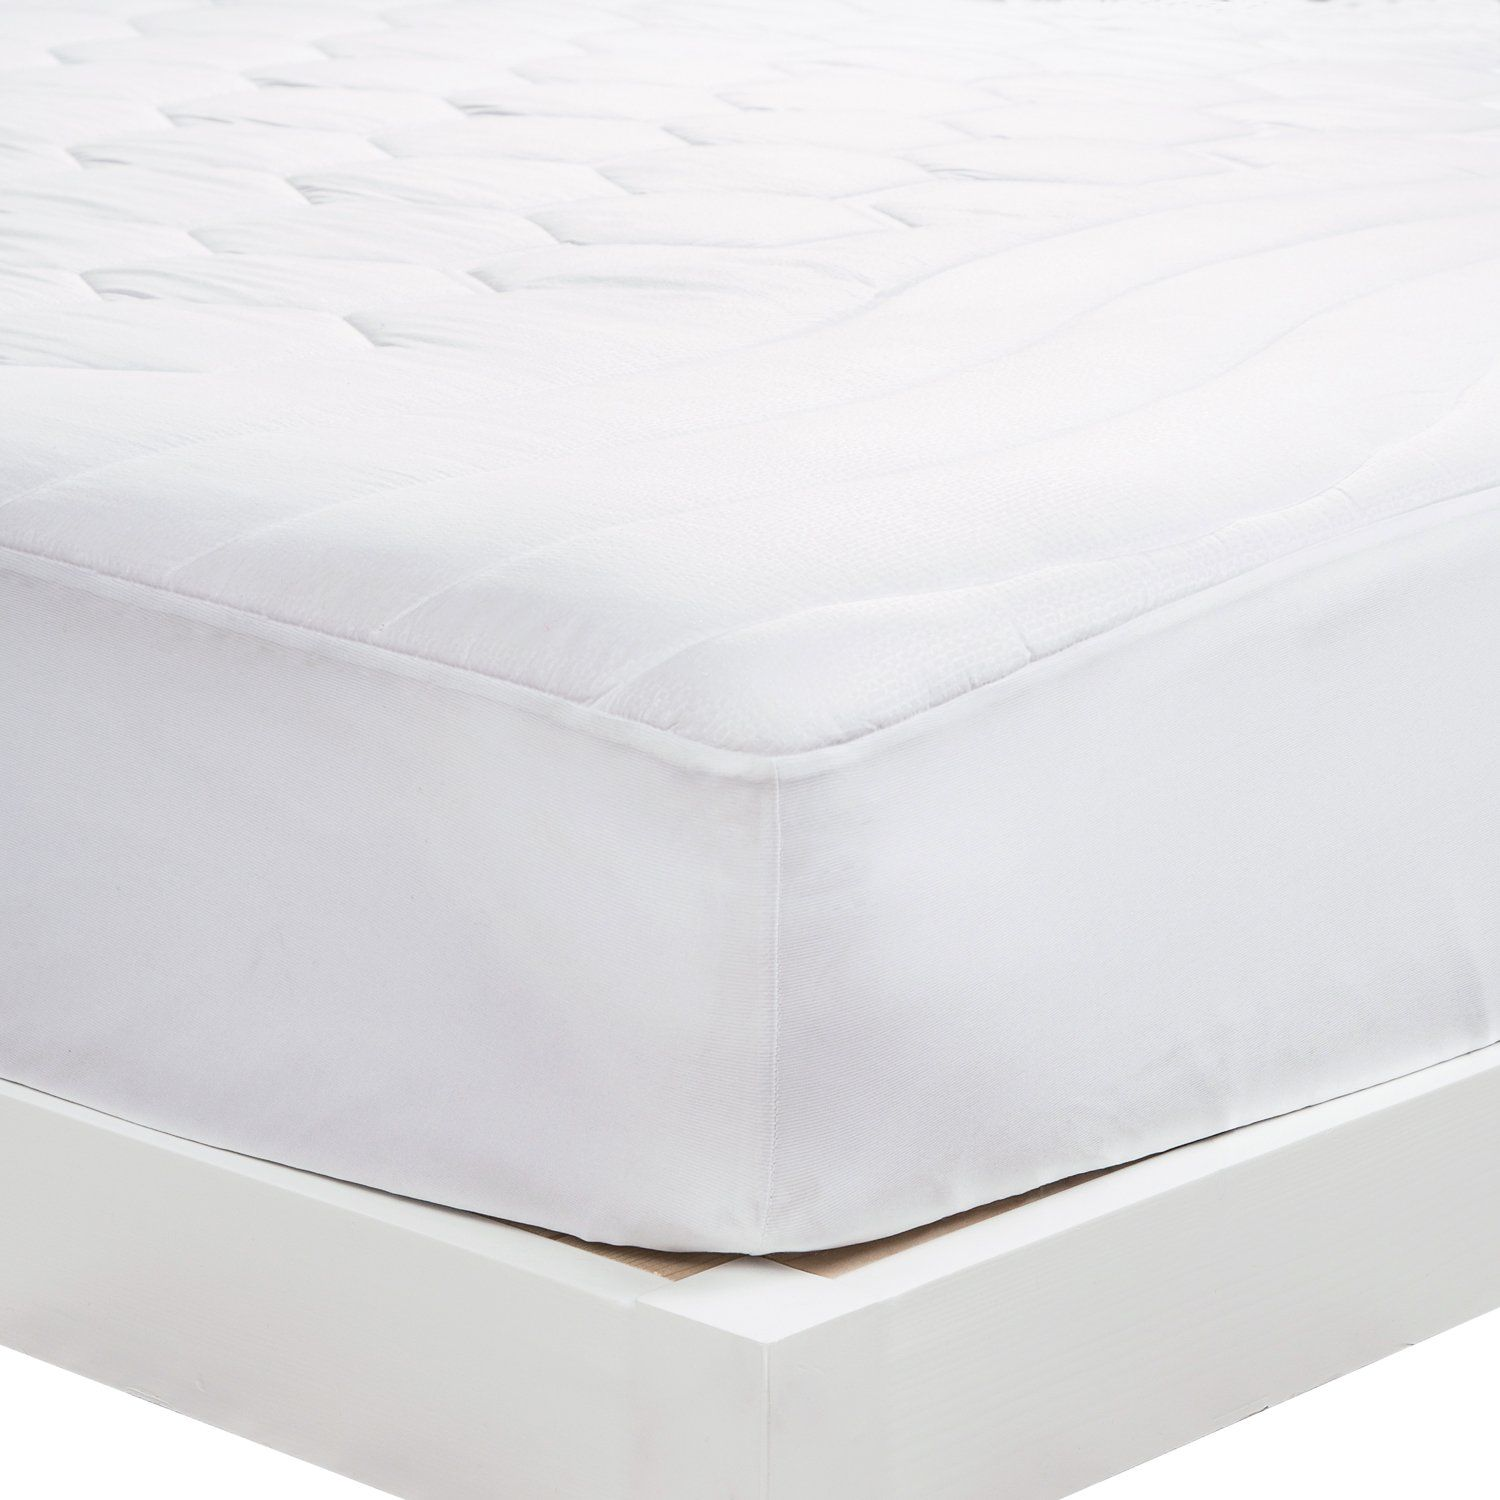 Bedsure Mattress Pad Twin XL/Twin Extra Long Size